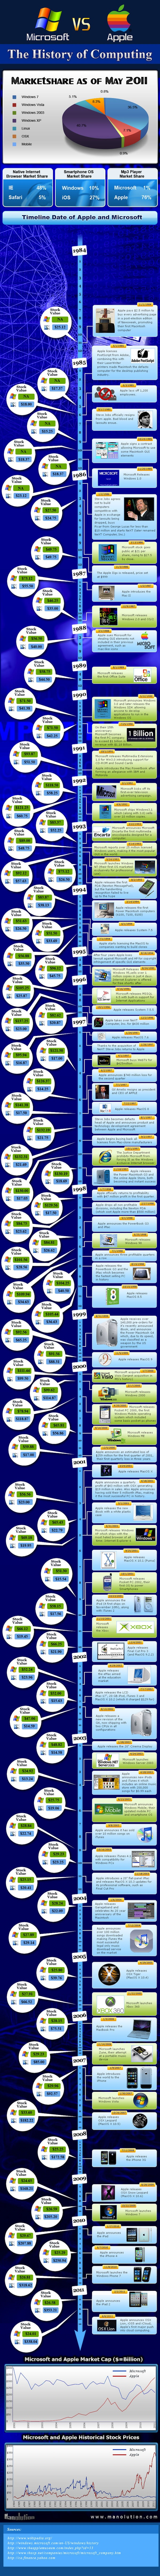 Microsoft vs. Apple: The History Of Computing [Infographic]